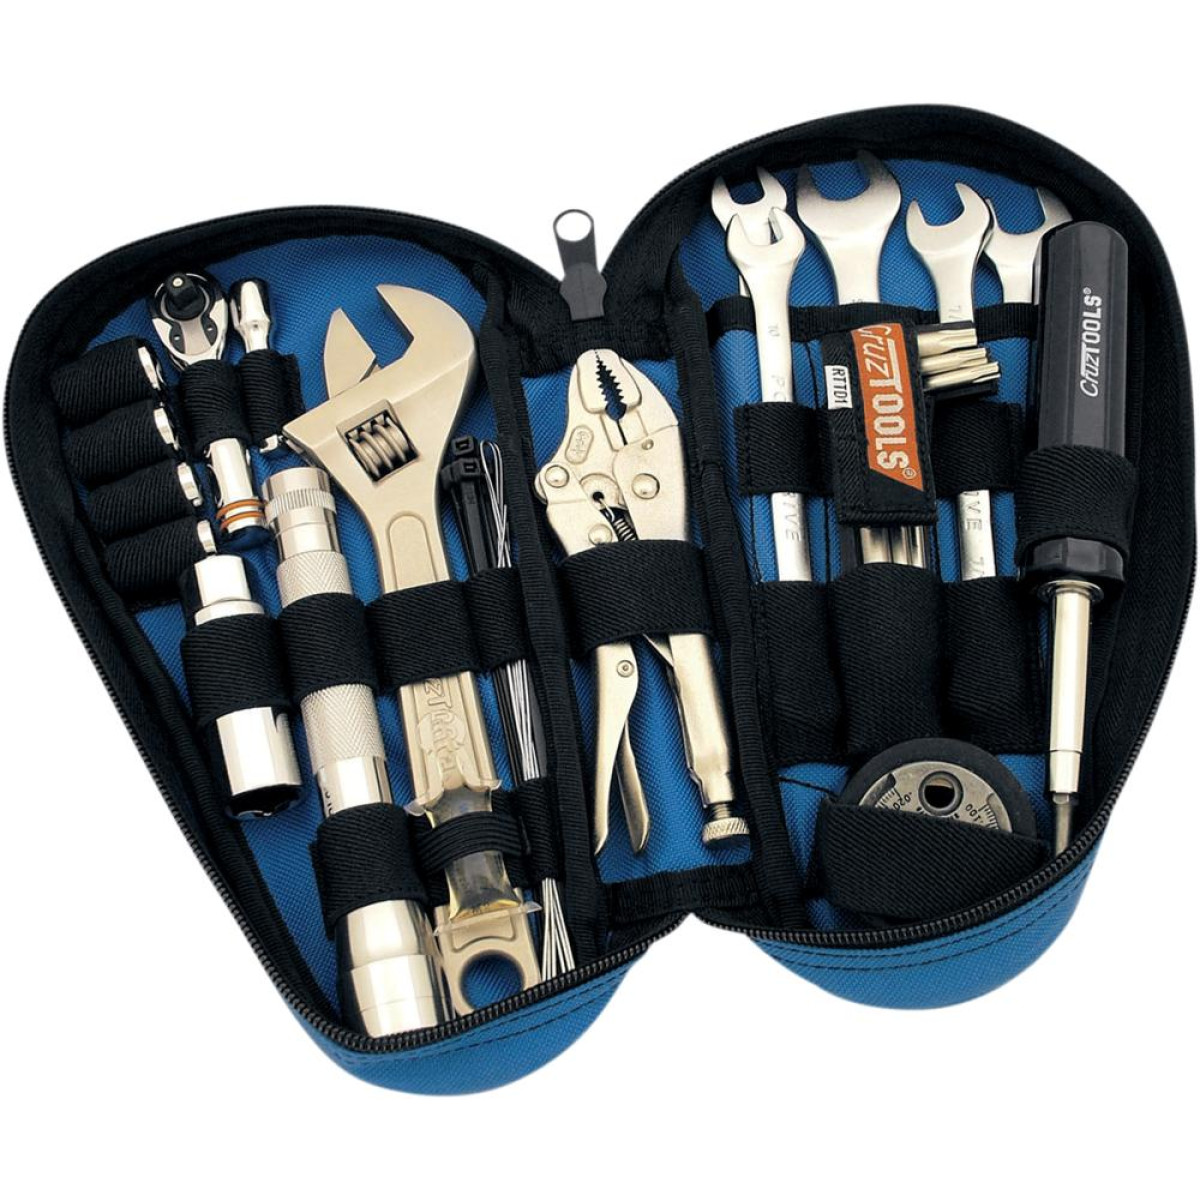 TOOL KIT ROADTECH HD TEARDROP